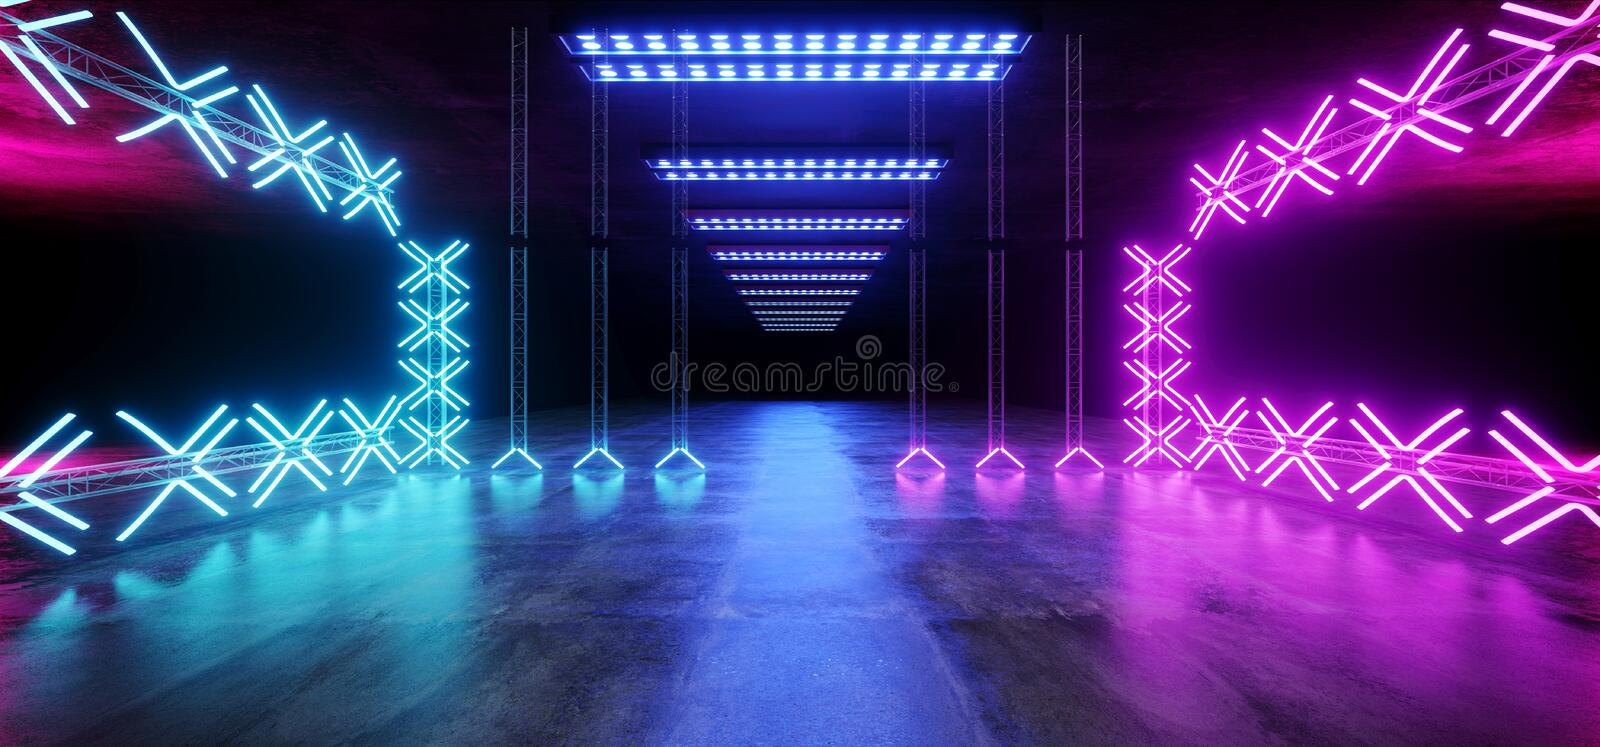 Sci Fi Asphalt Futuristic Dance Stage Empty Metal Construction Structure Tunnel Underground Show Neon Glowing Laser Led Vibrant. Purple Blue Grunge Concrete stock illustration